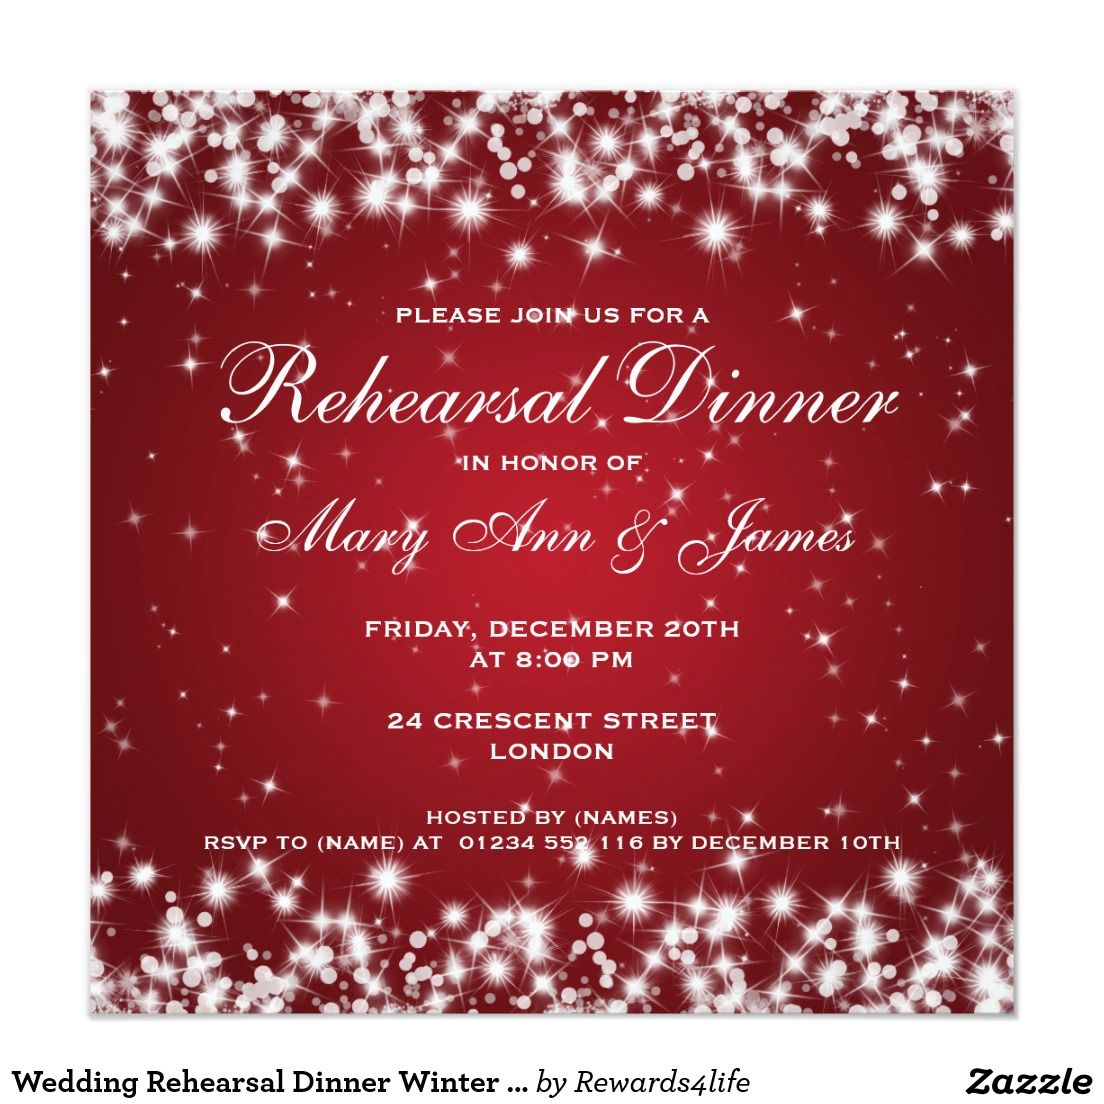 Wedding Rehearsal Dinner Winter Sparkle Red | Rehearsal Dinner ...